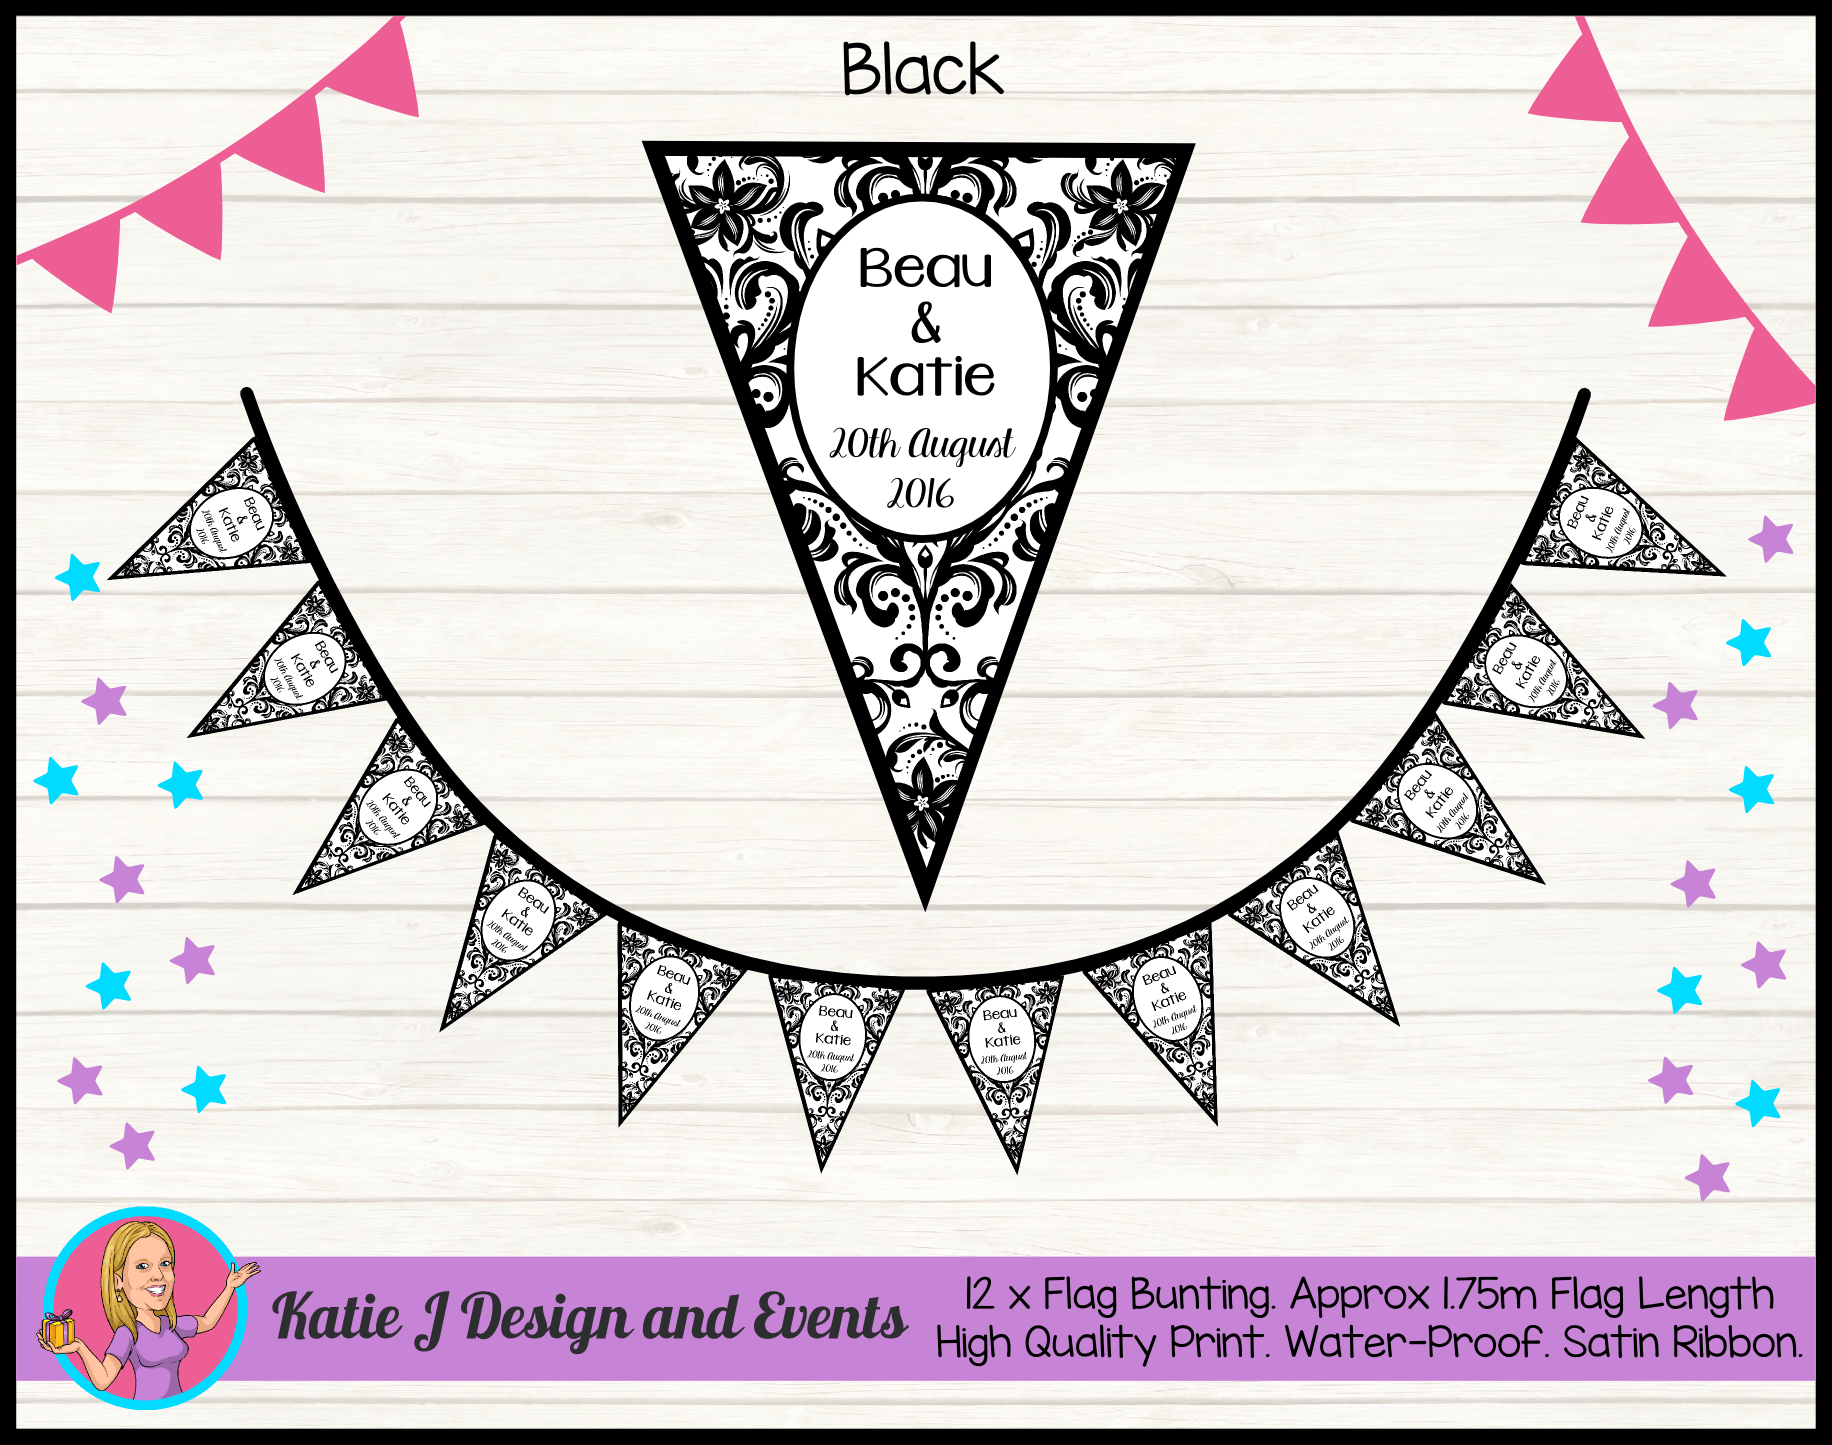 Personalised Black Damask Wedding Flag Bunting Banners